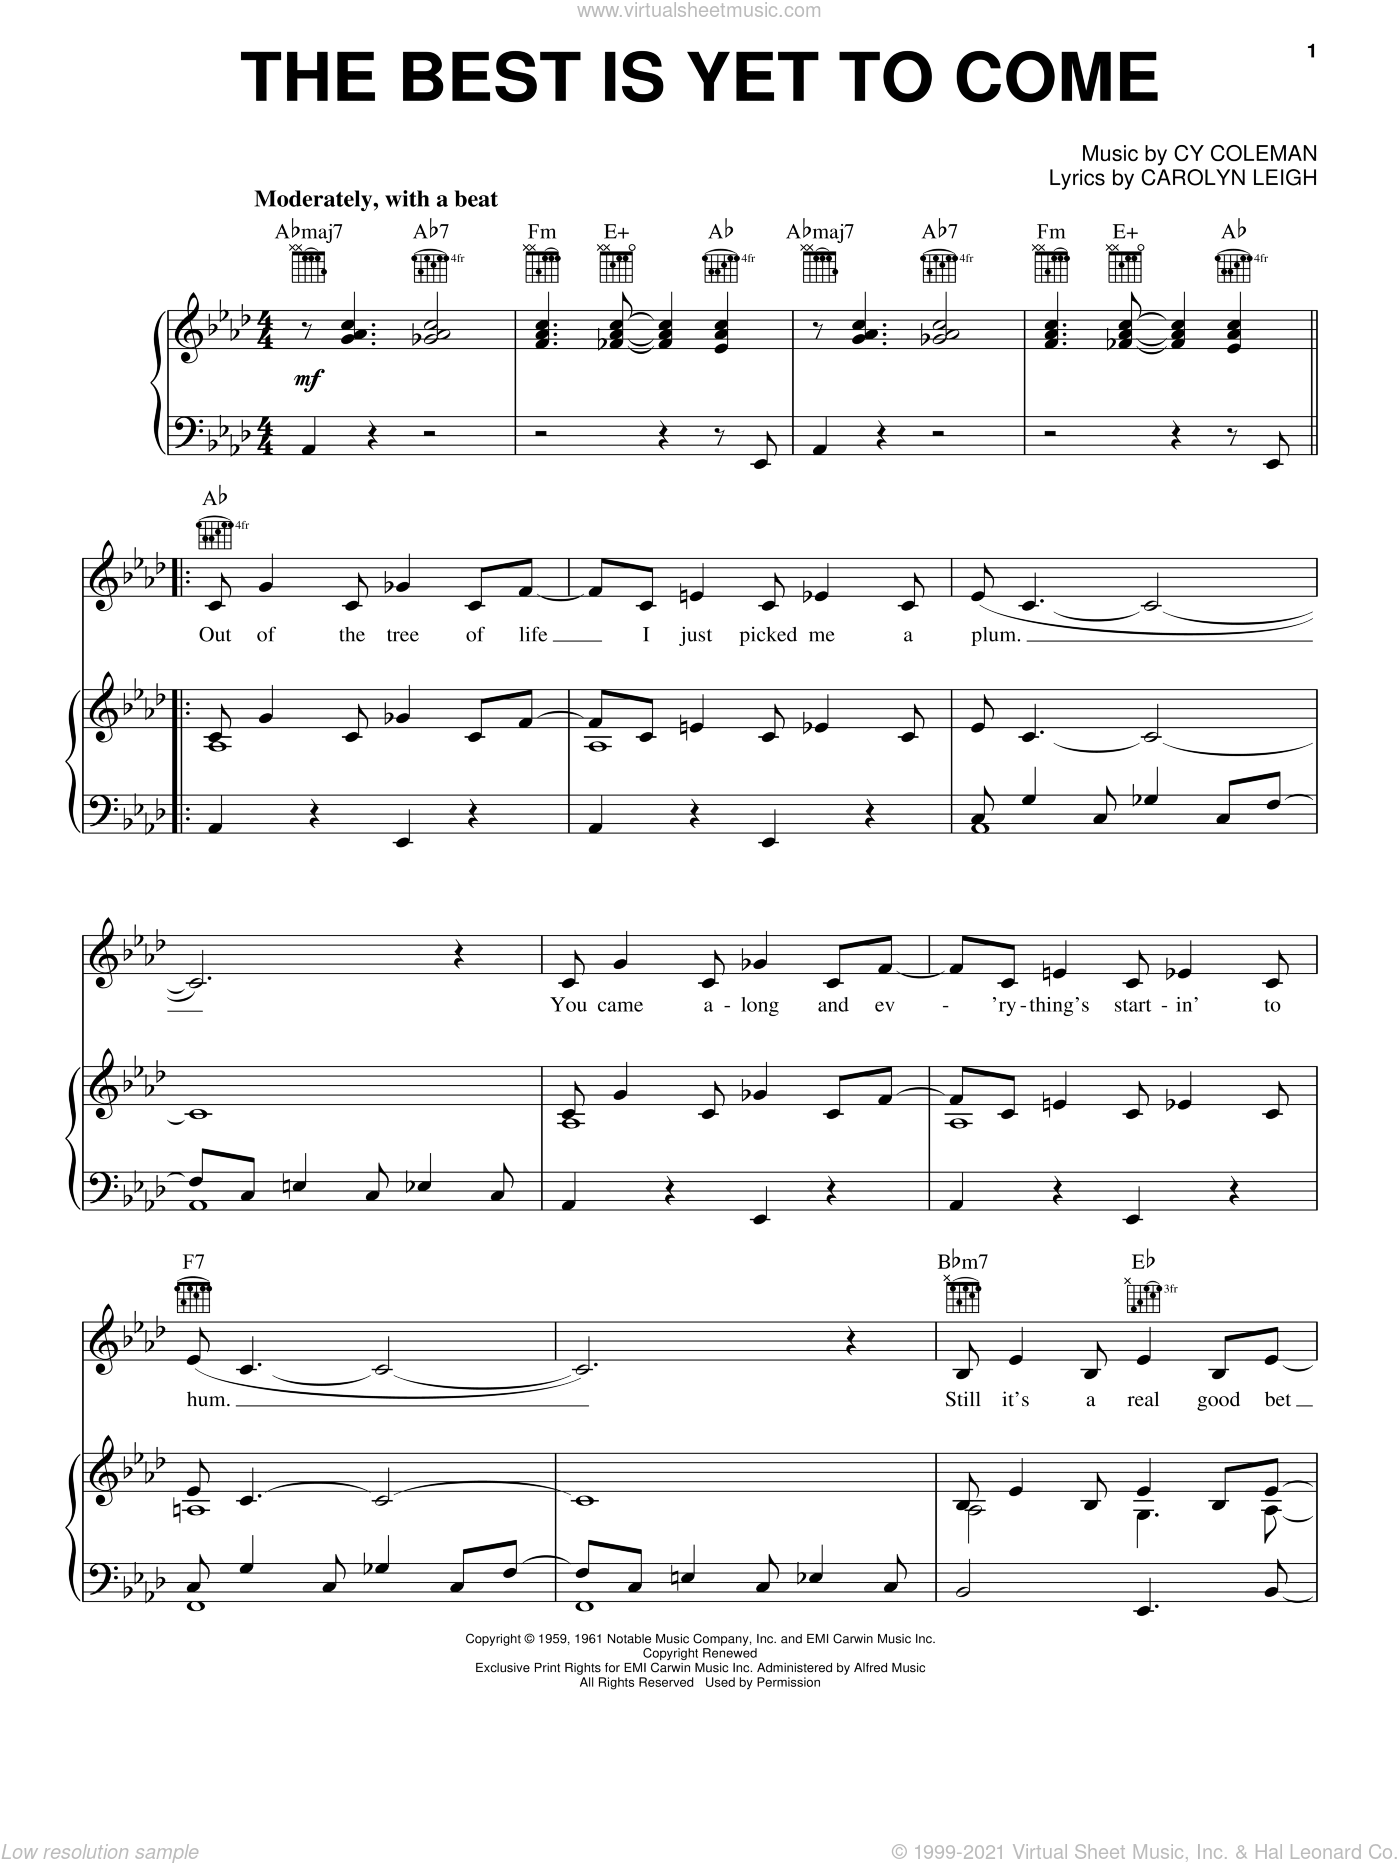 The Best Is Yet To Come sheet music for voice, piano or guitar by Frank Sinatra, Tony Bennett, Carolyn Leigh and Cy Coleman, intermediate. Score Image Preview.